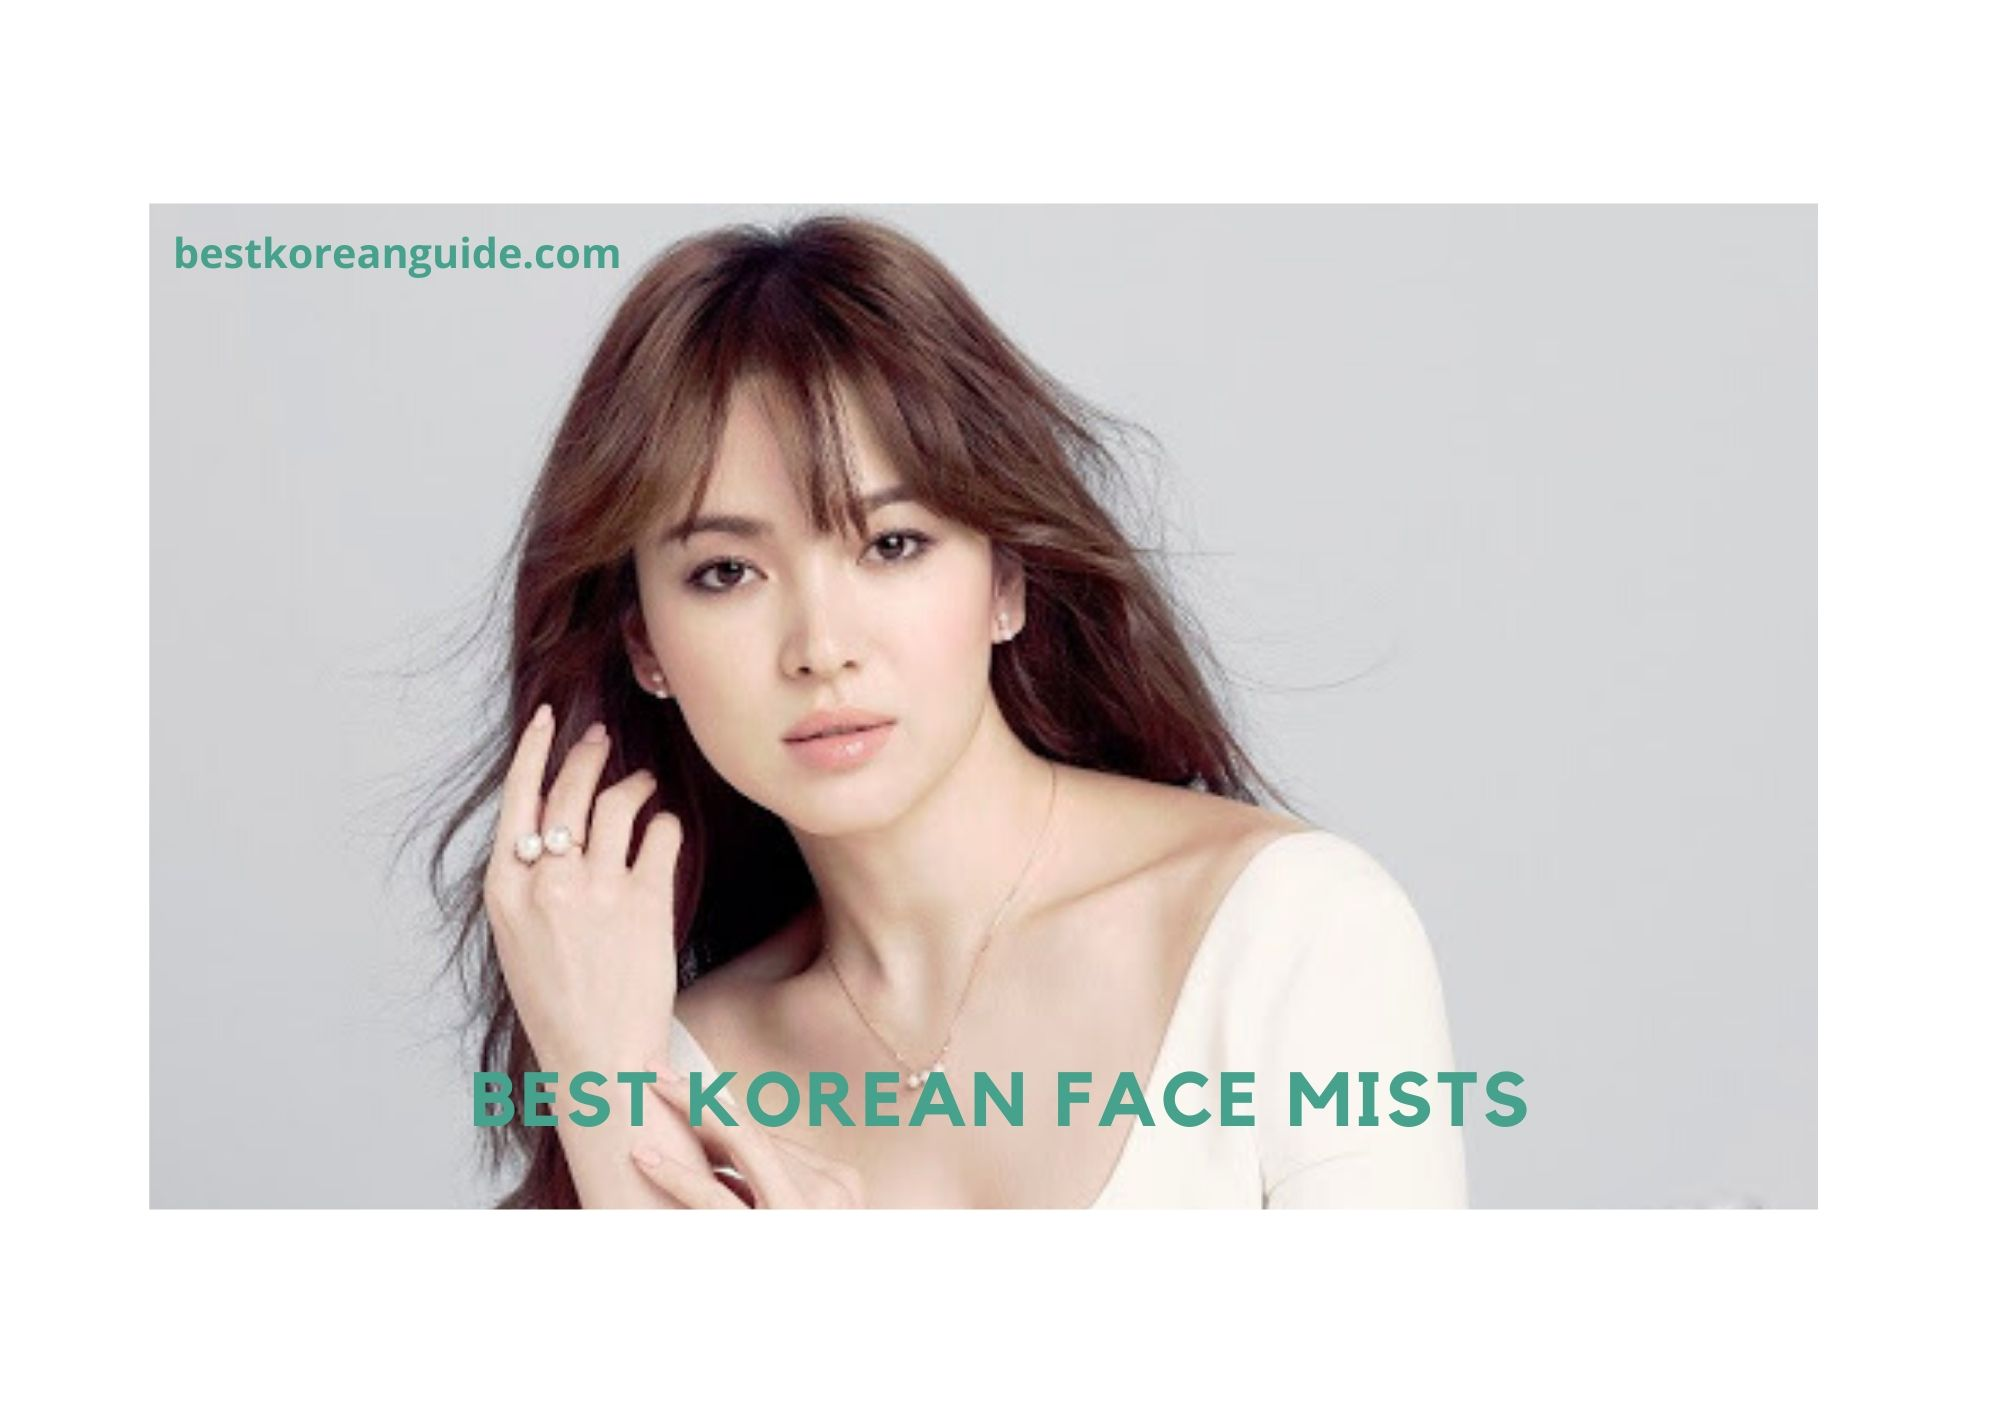 Best korean Face Mists